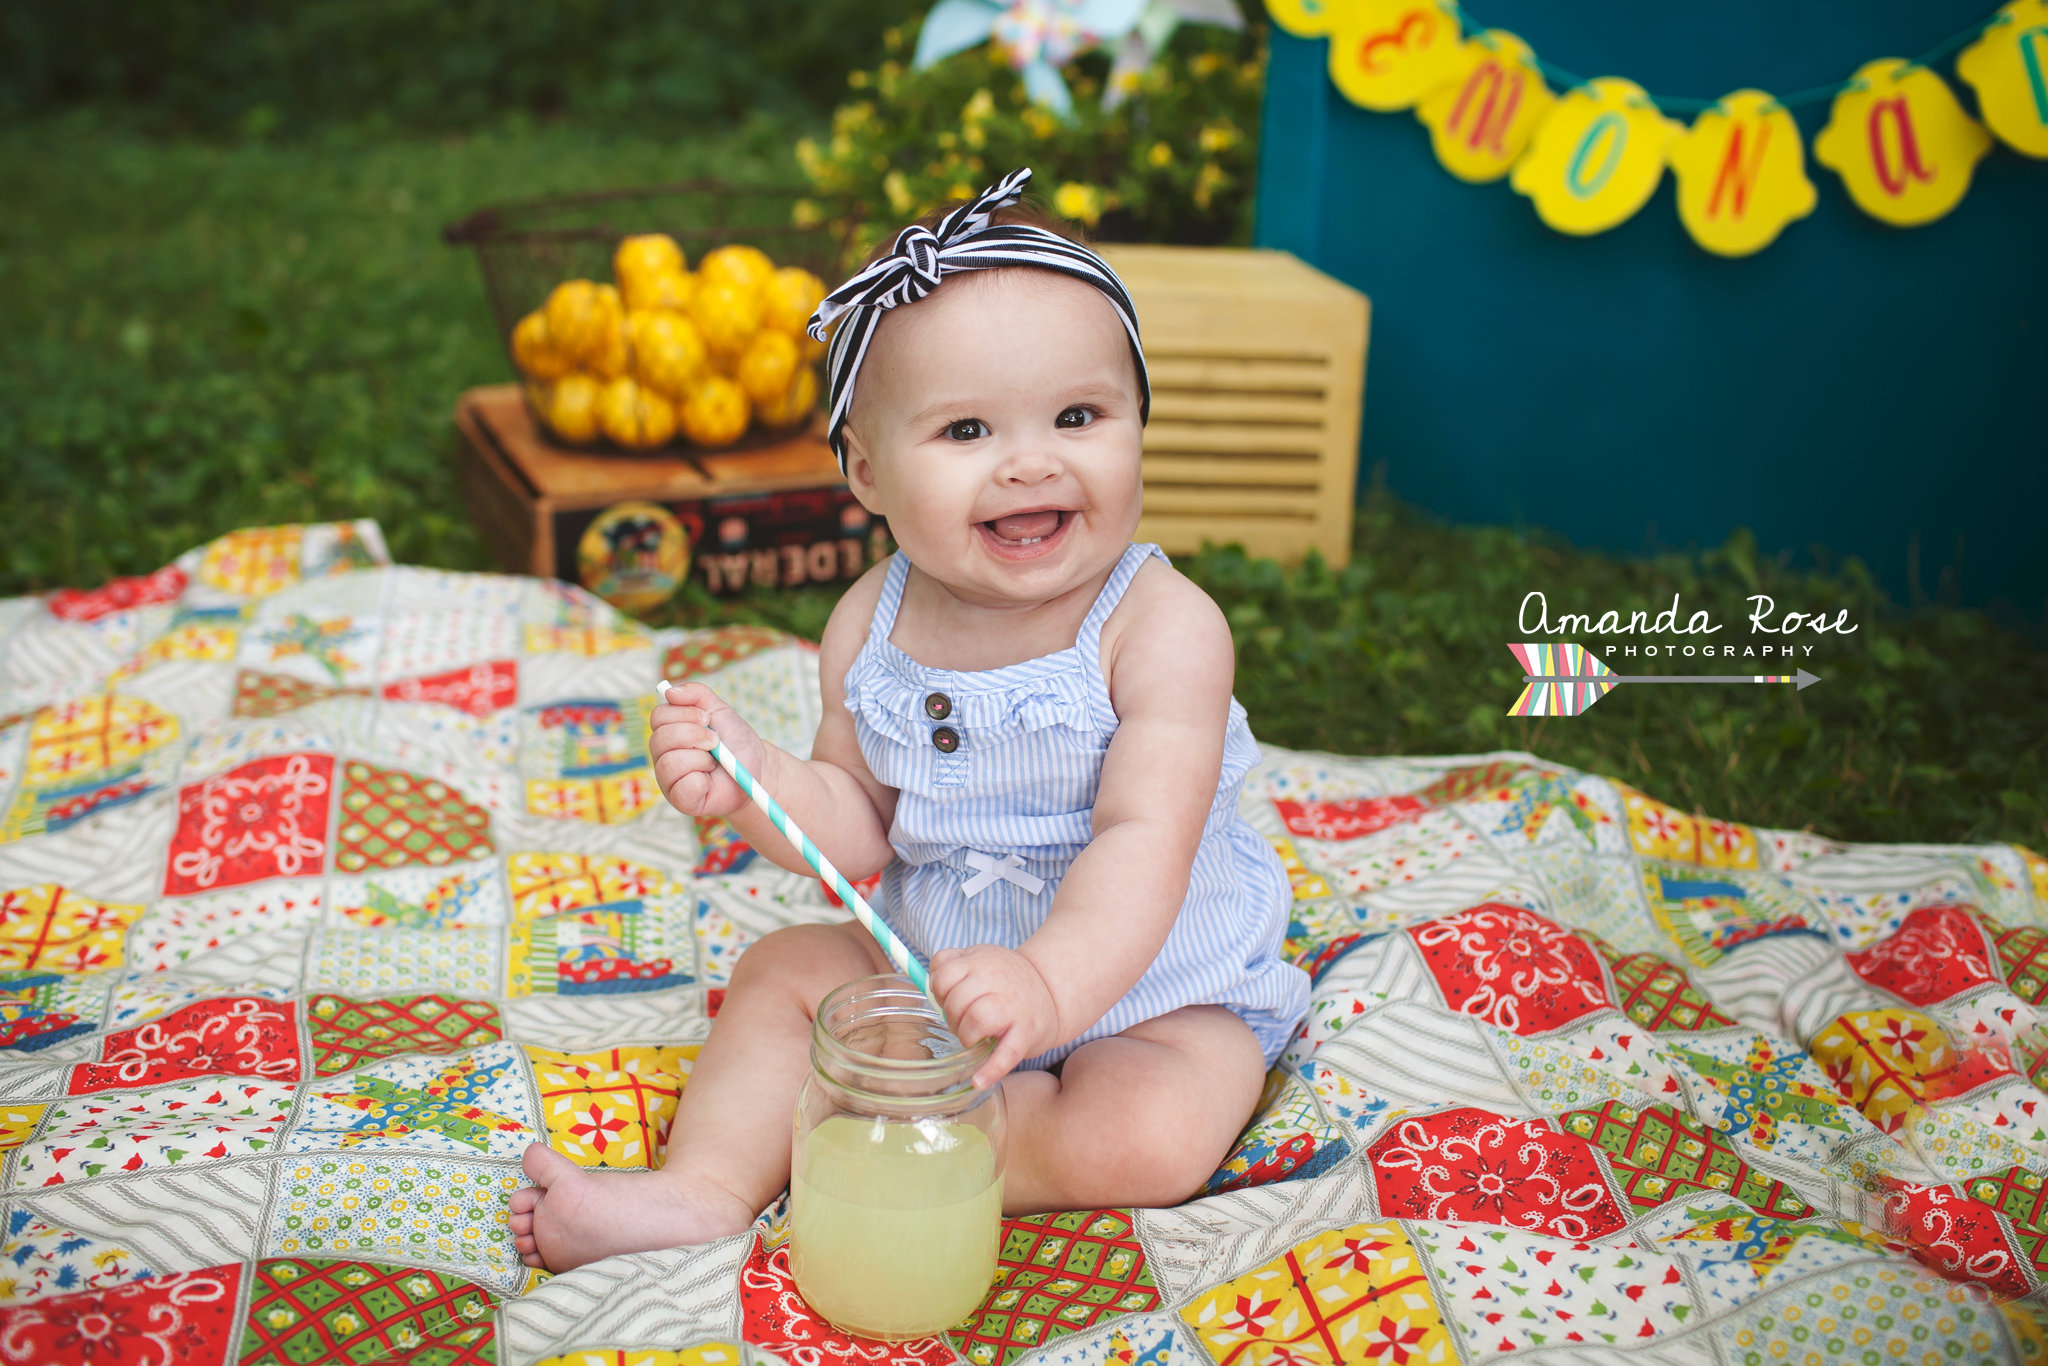 Lemonade Stand Session. Amanda Rose Photography, natural light photographer.  NWI Indiana, Valparaiso, IN.  Chicago.  Child photography.